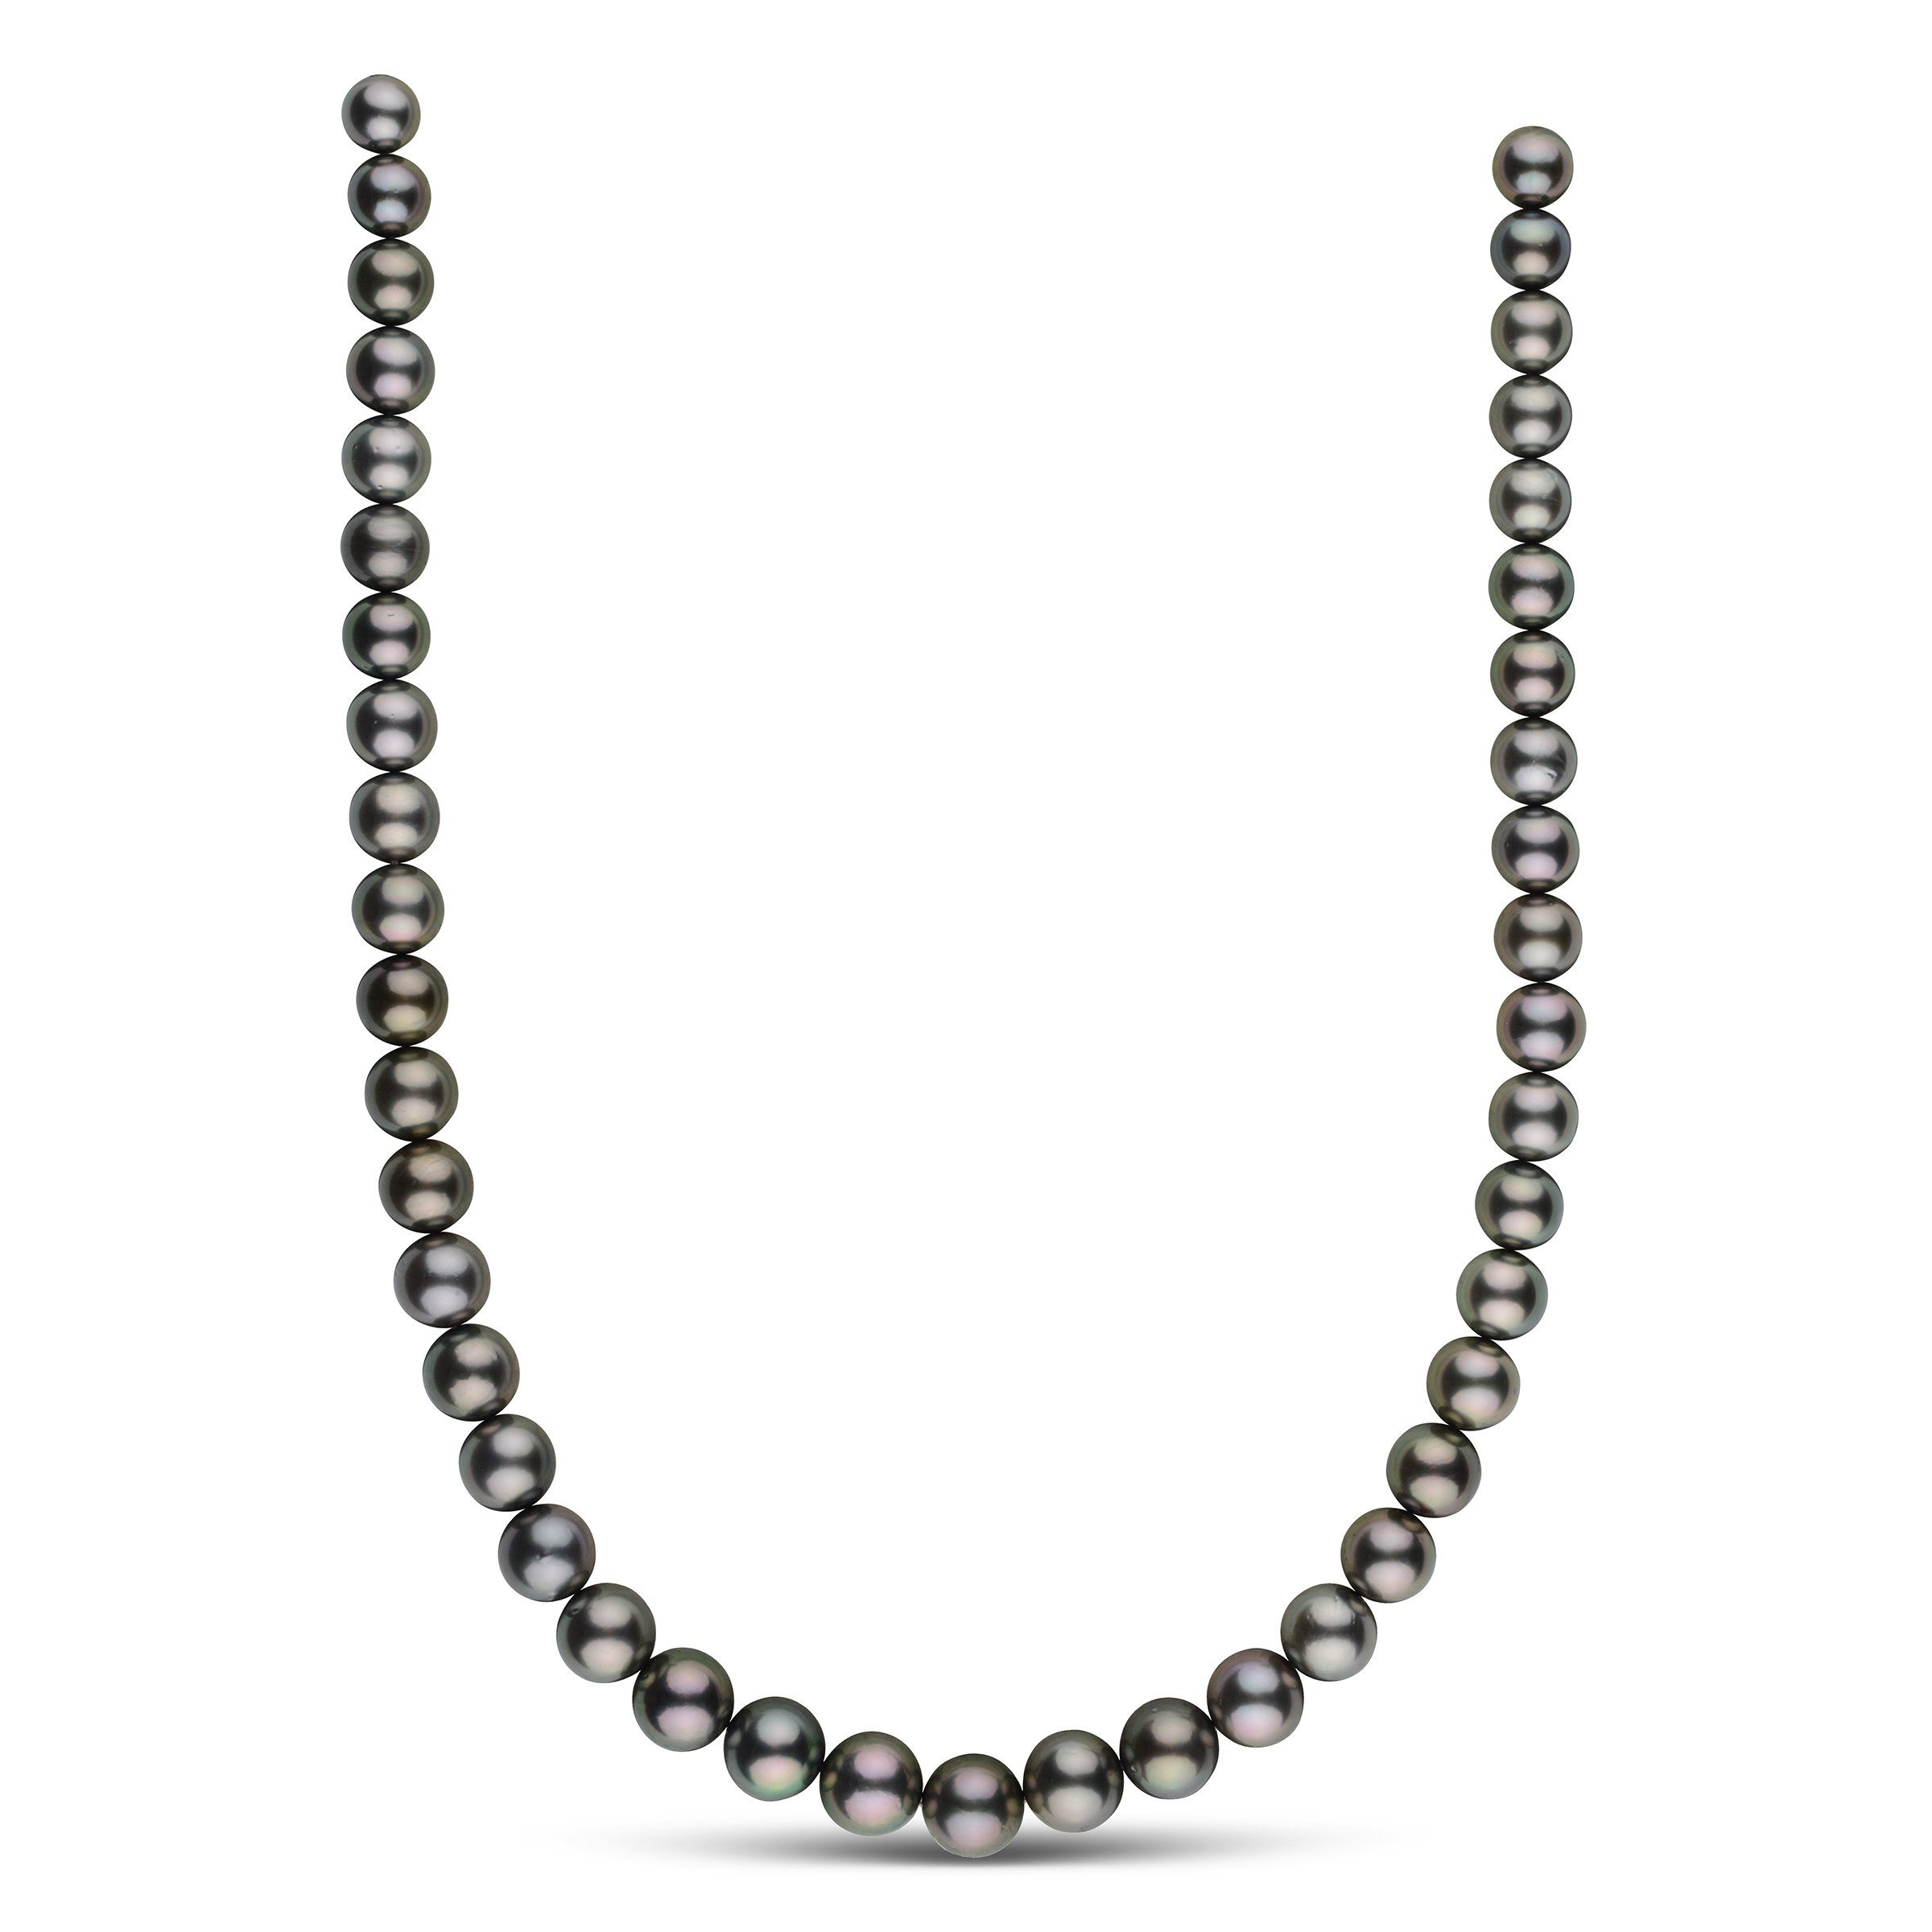 8.3-10.9 mm AA+ Round Tahitian Pearl Necklace